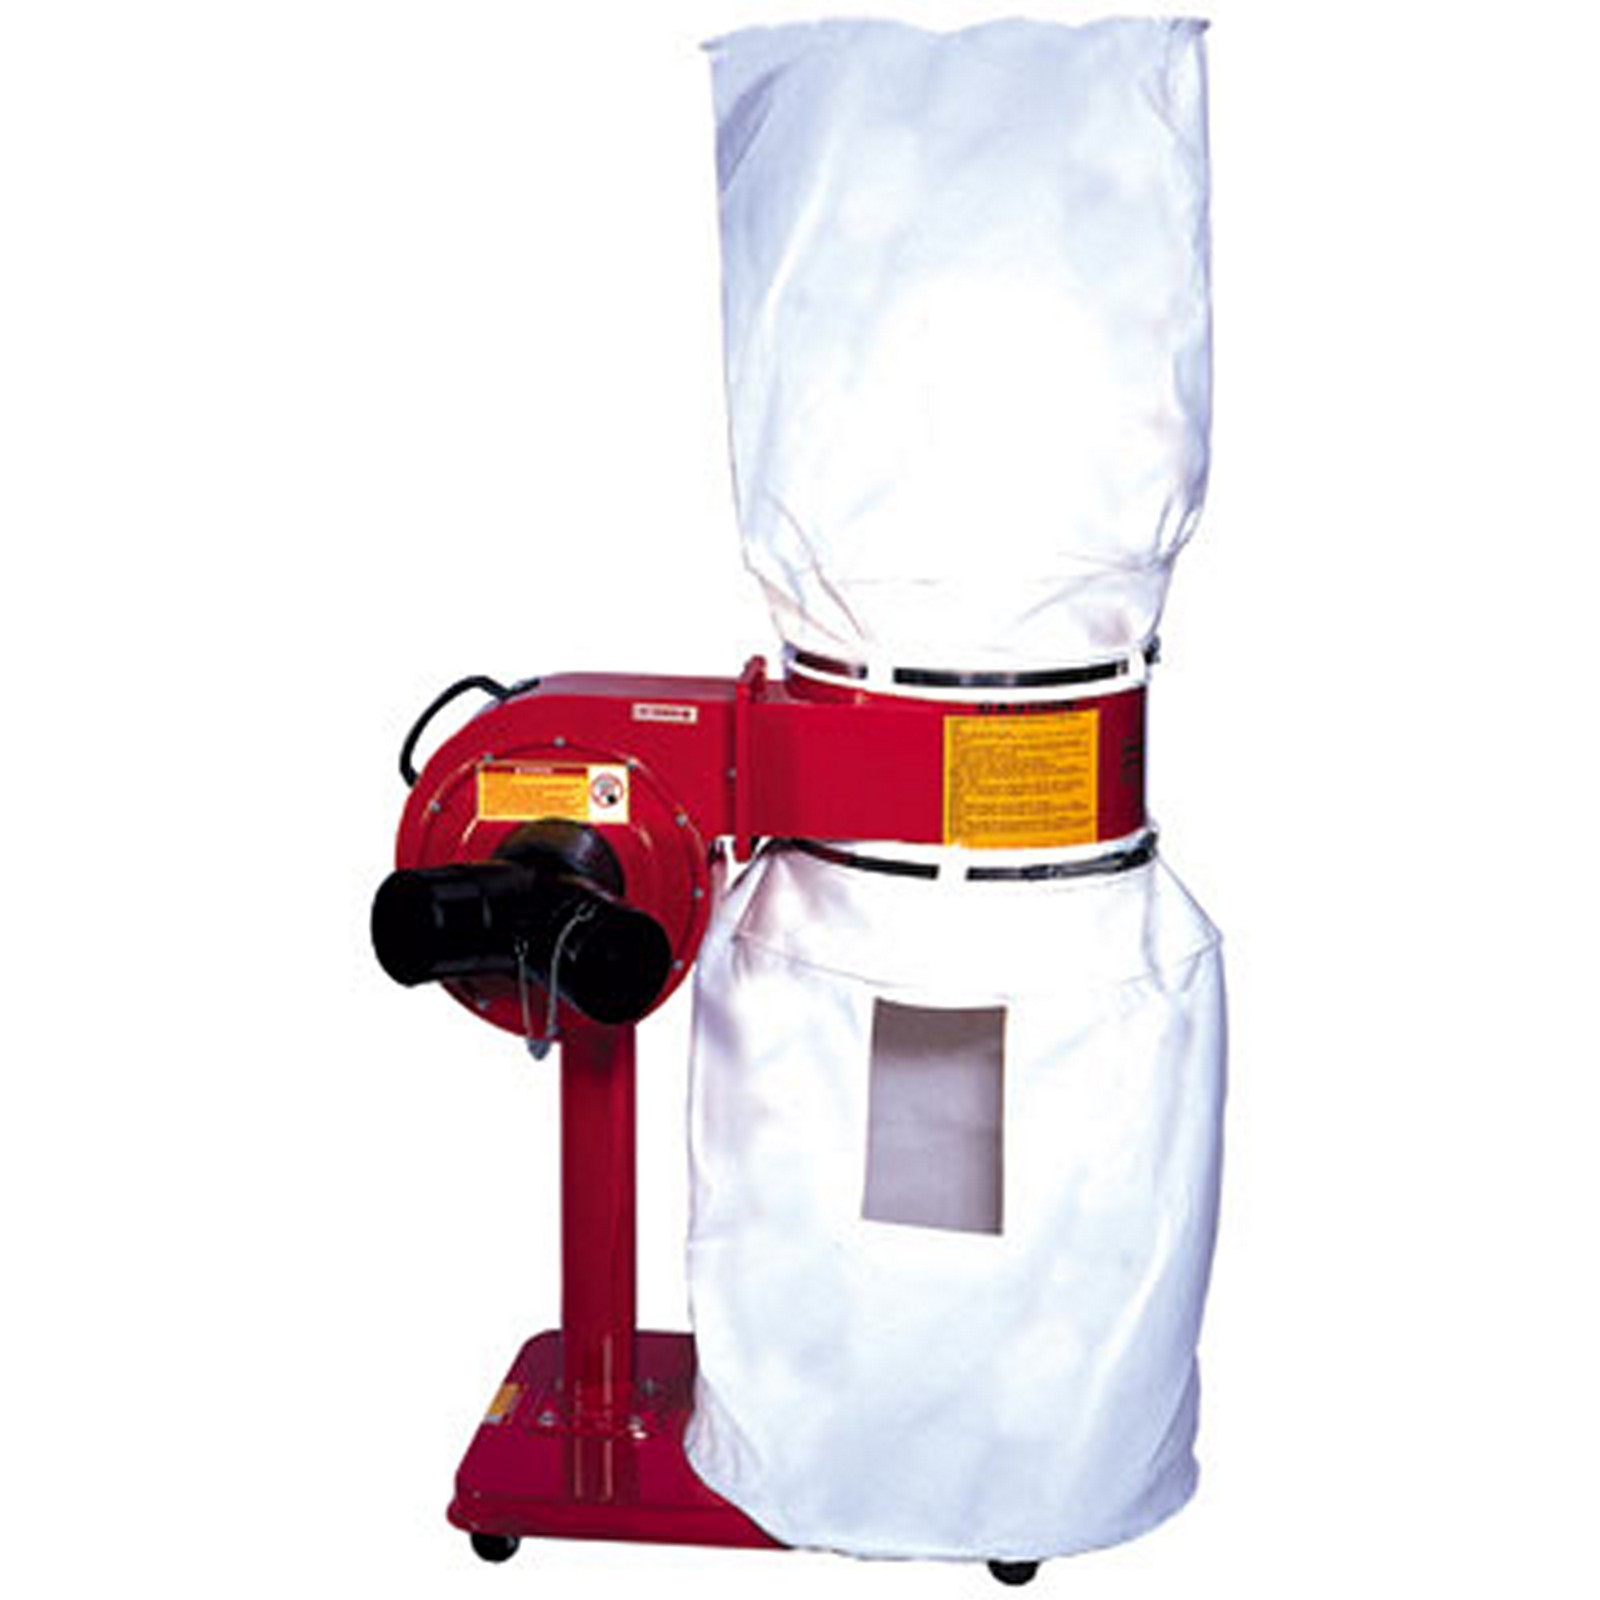 1hp Dc1b Xl Dust Collector With 1 Micron Bags Item